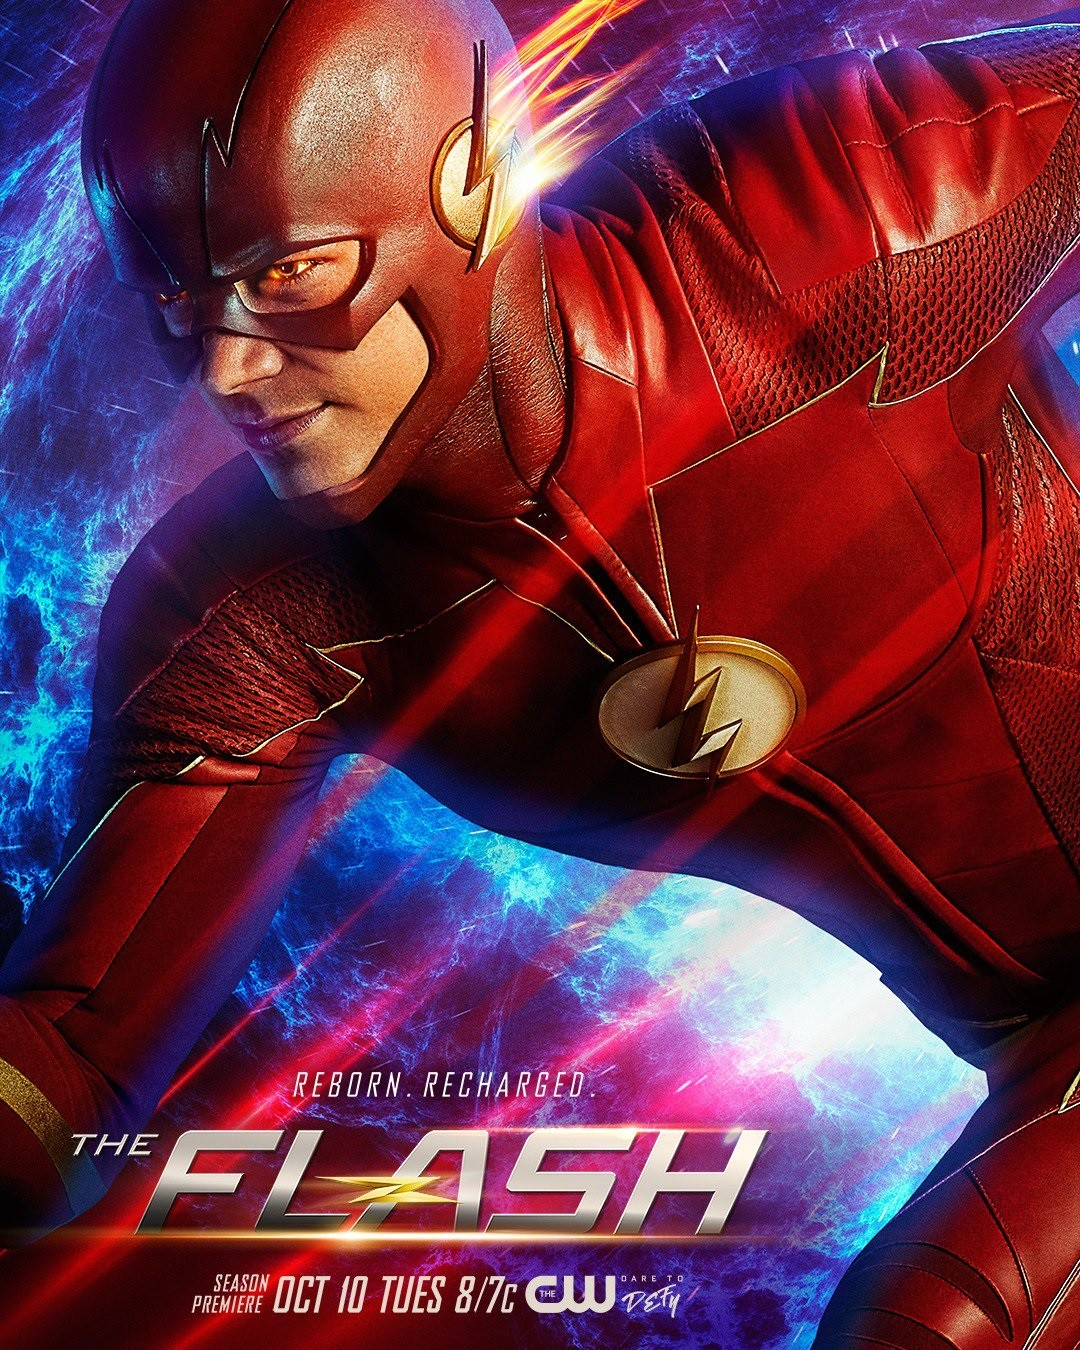 New Season 4 Poster Provides Even Better Look At The Flash's New Costume